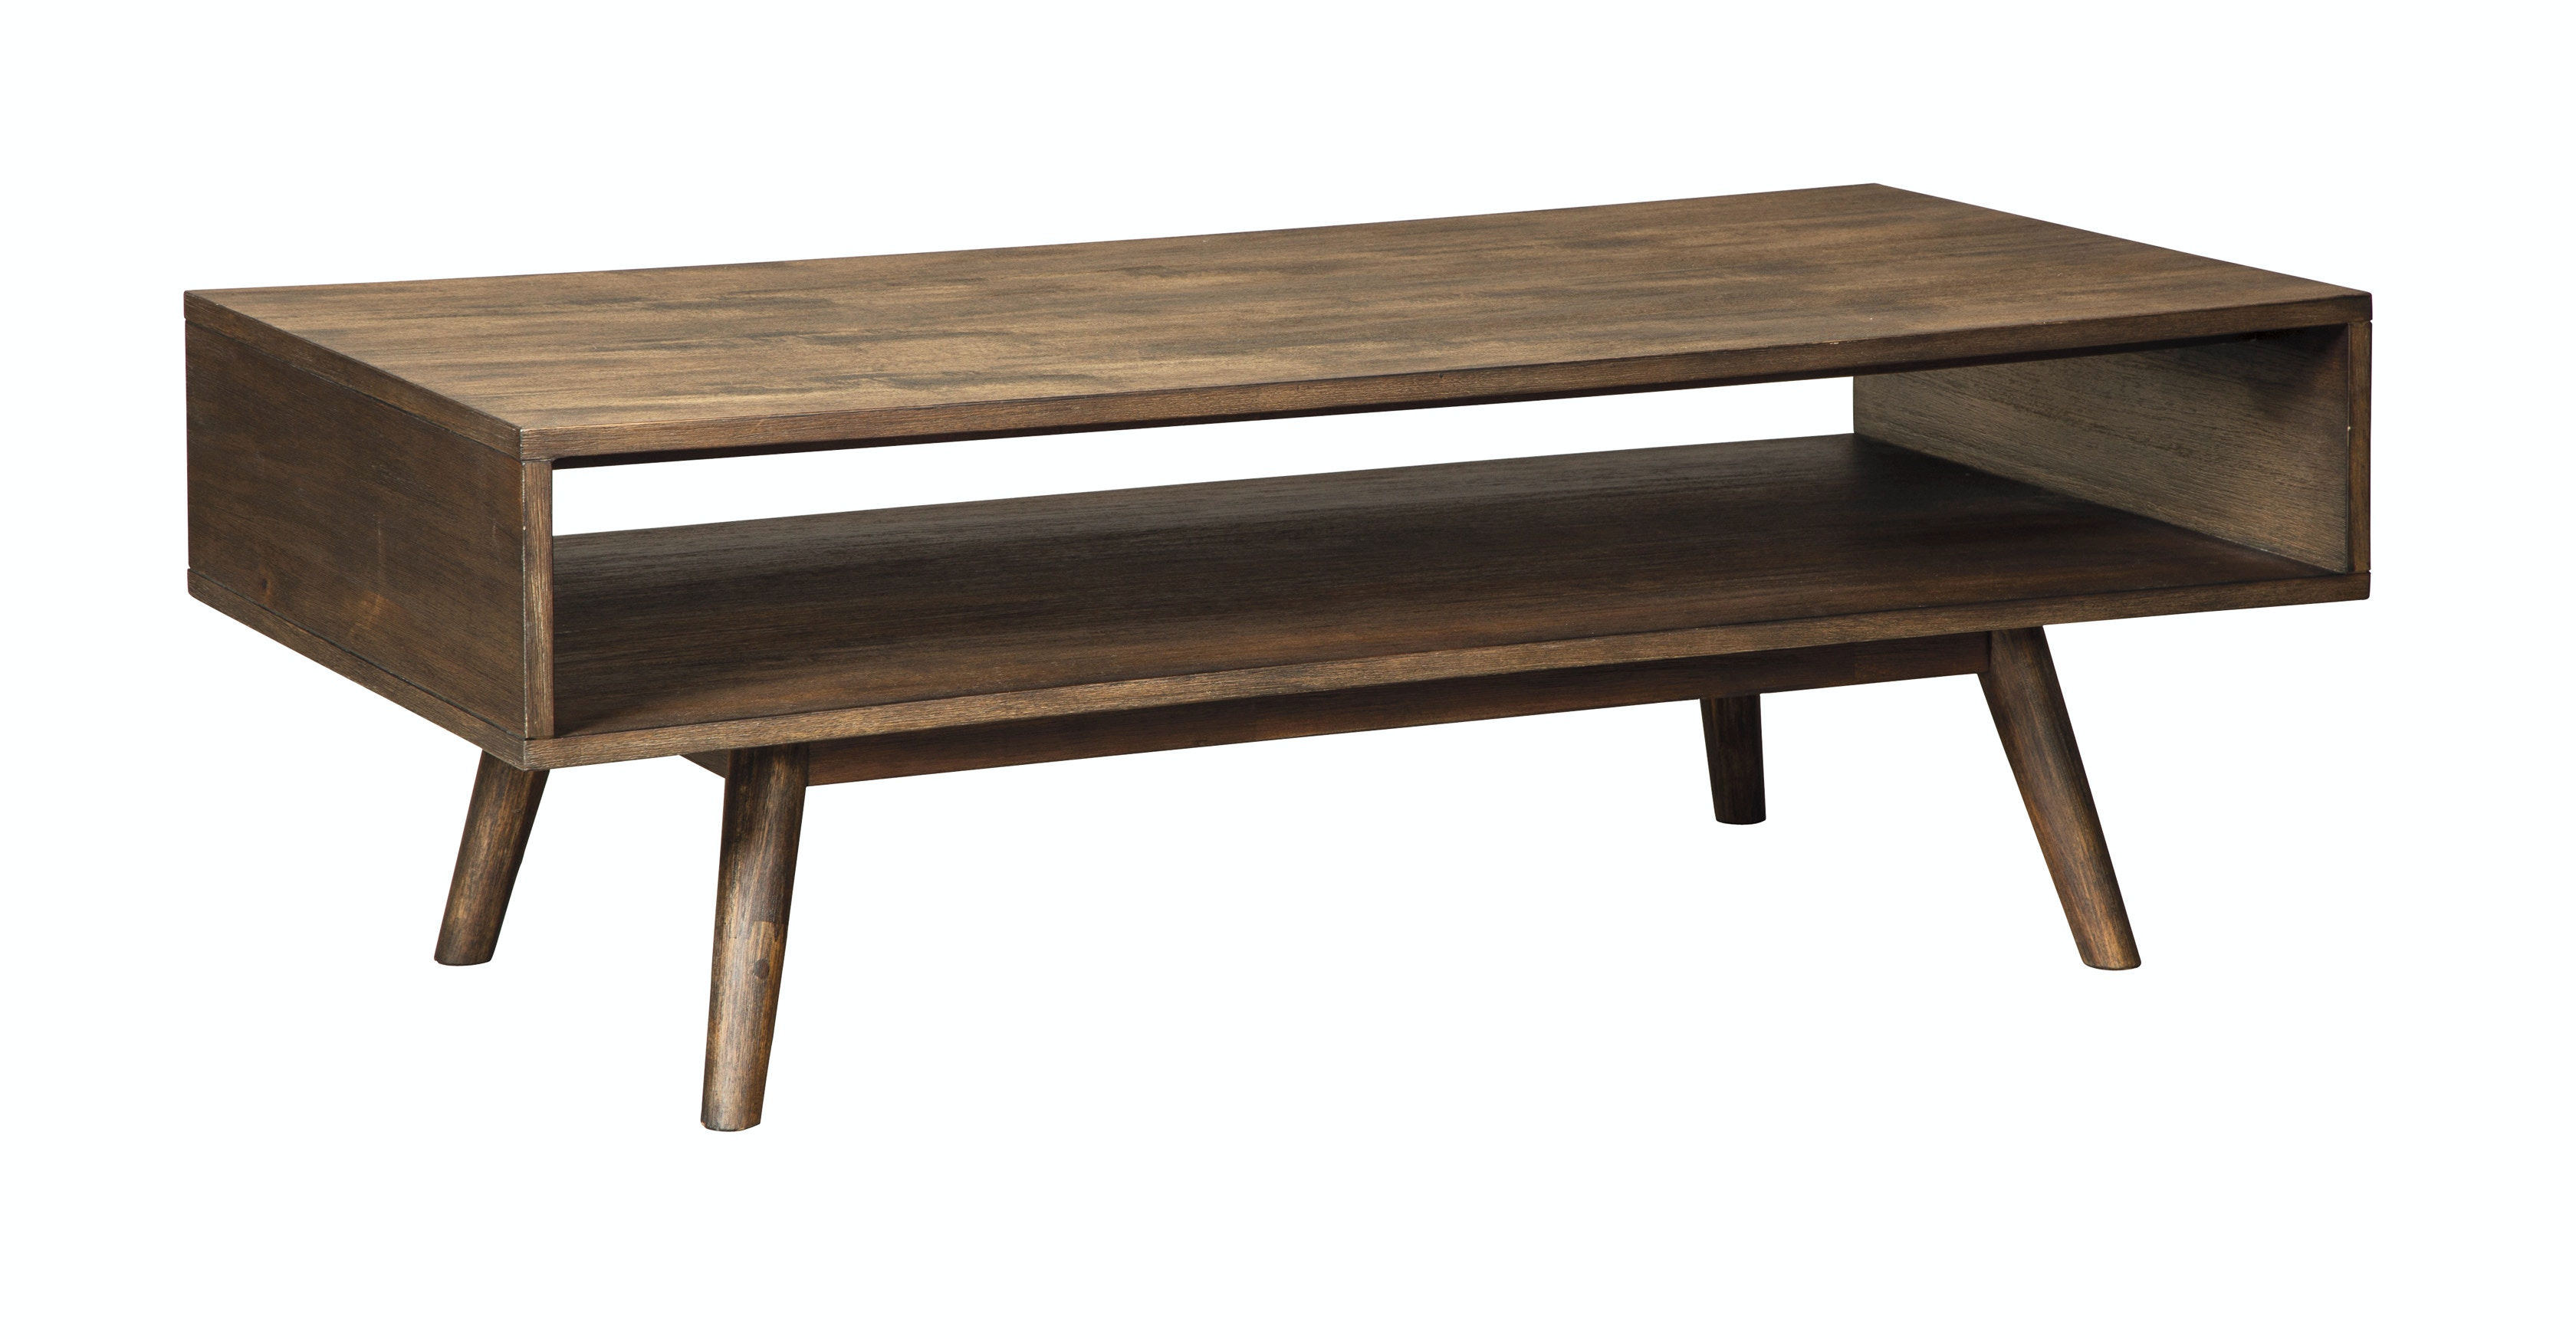 Chloe Rectangular Coffee Table ST:487301